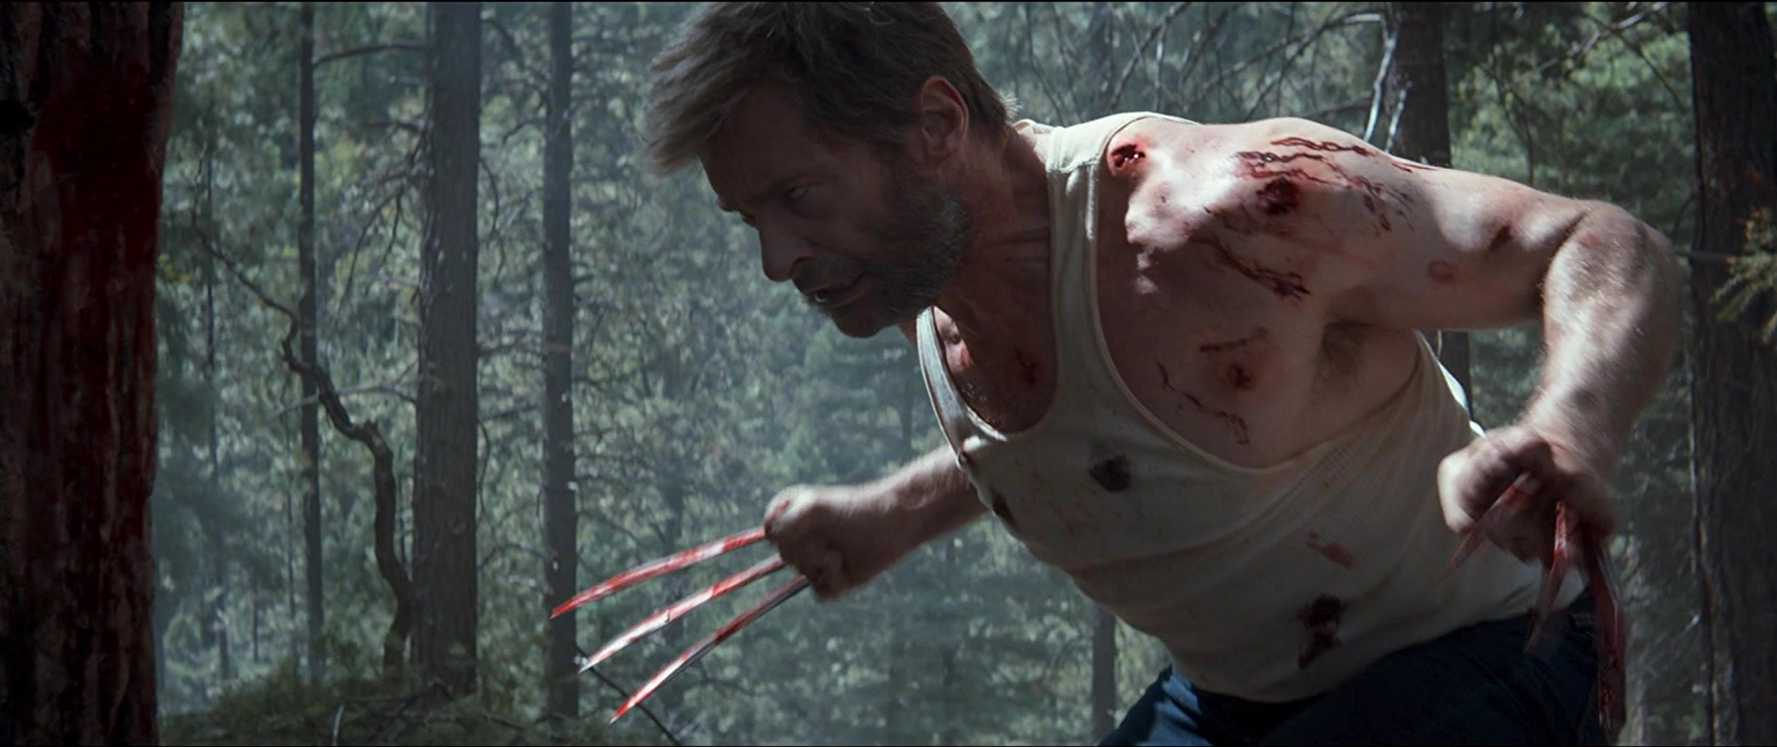 Sony will also explore its options around 'Logan' and 'Deadpool'. (IMDb)